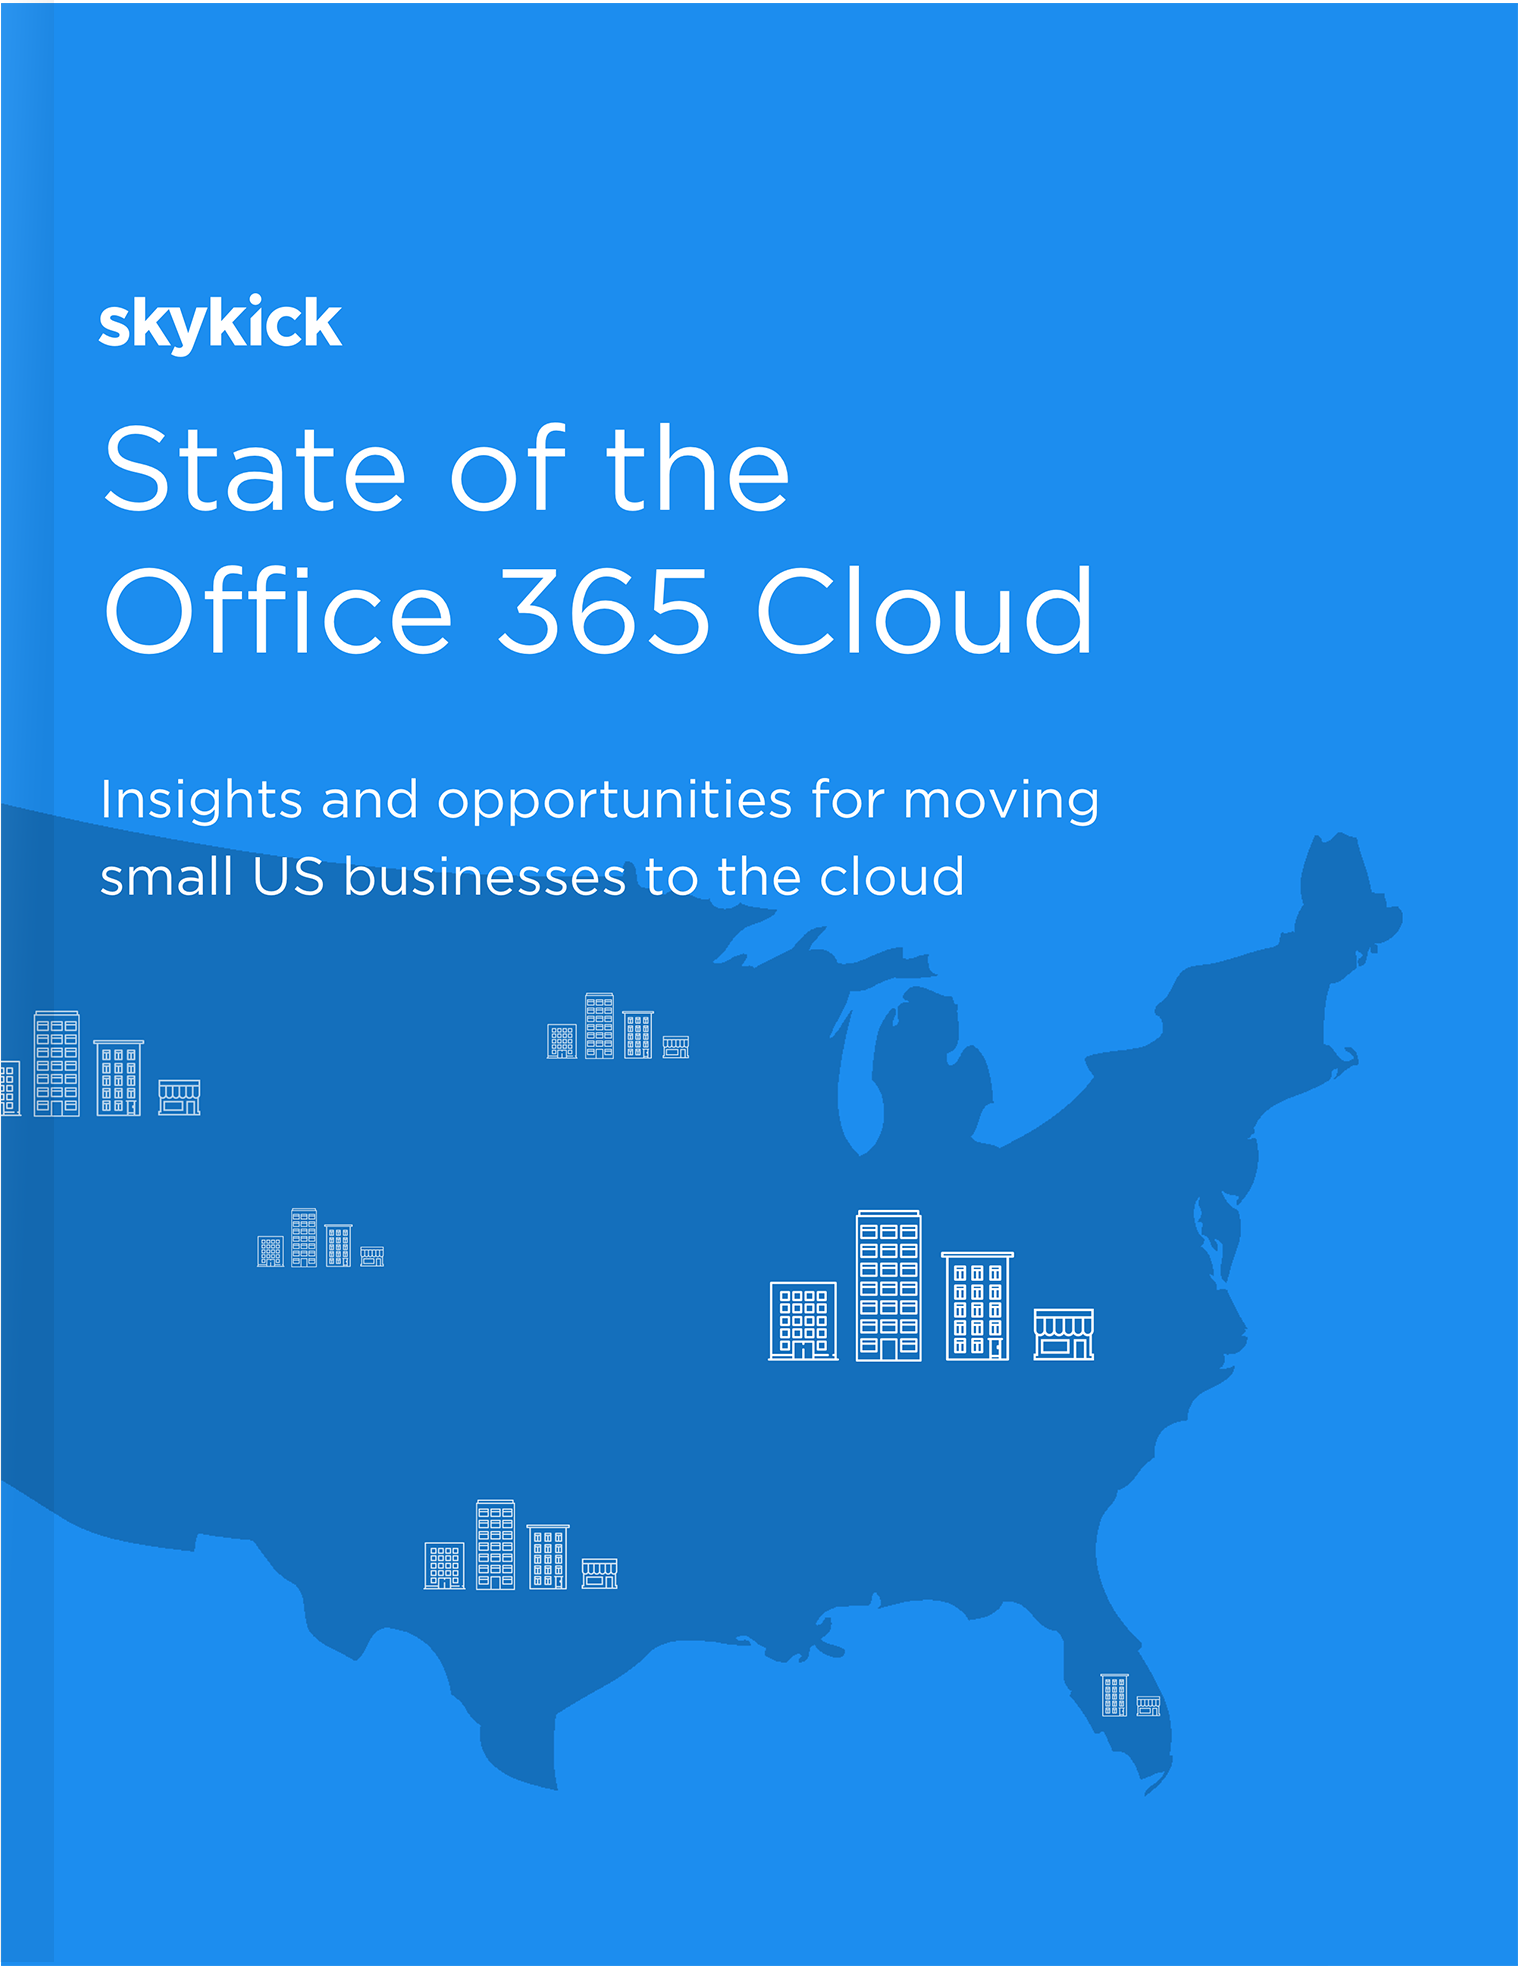 stateofthecloud.png